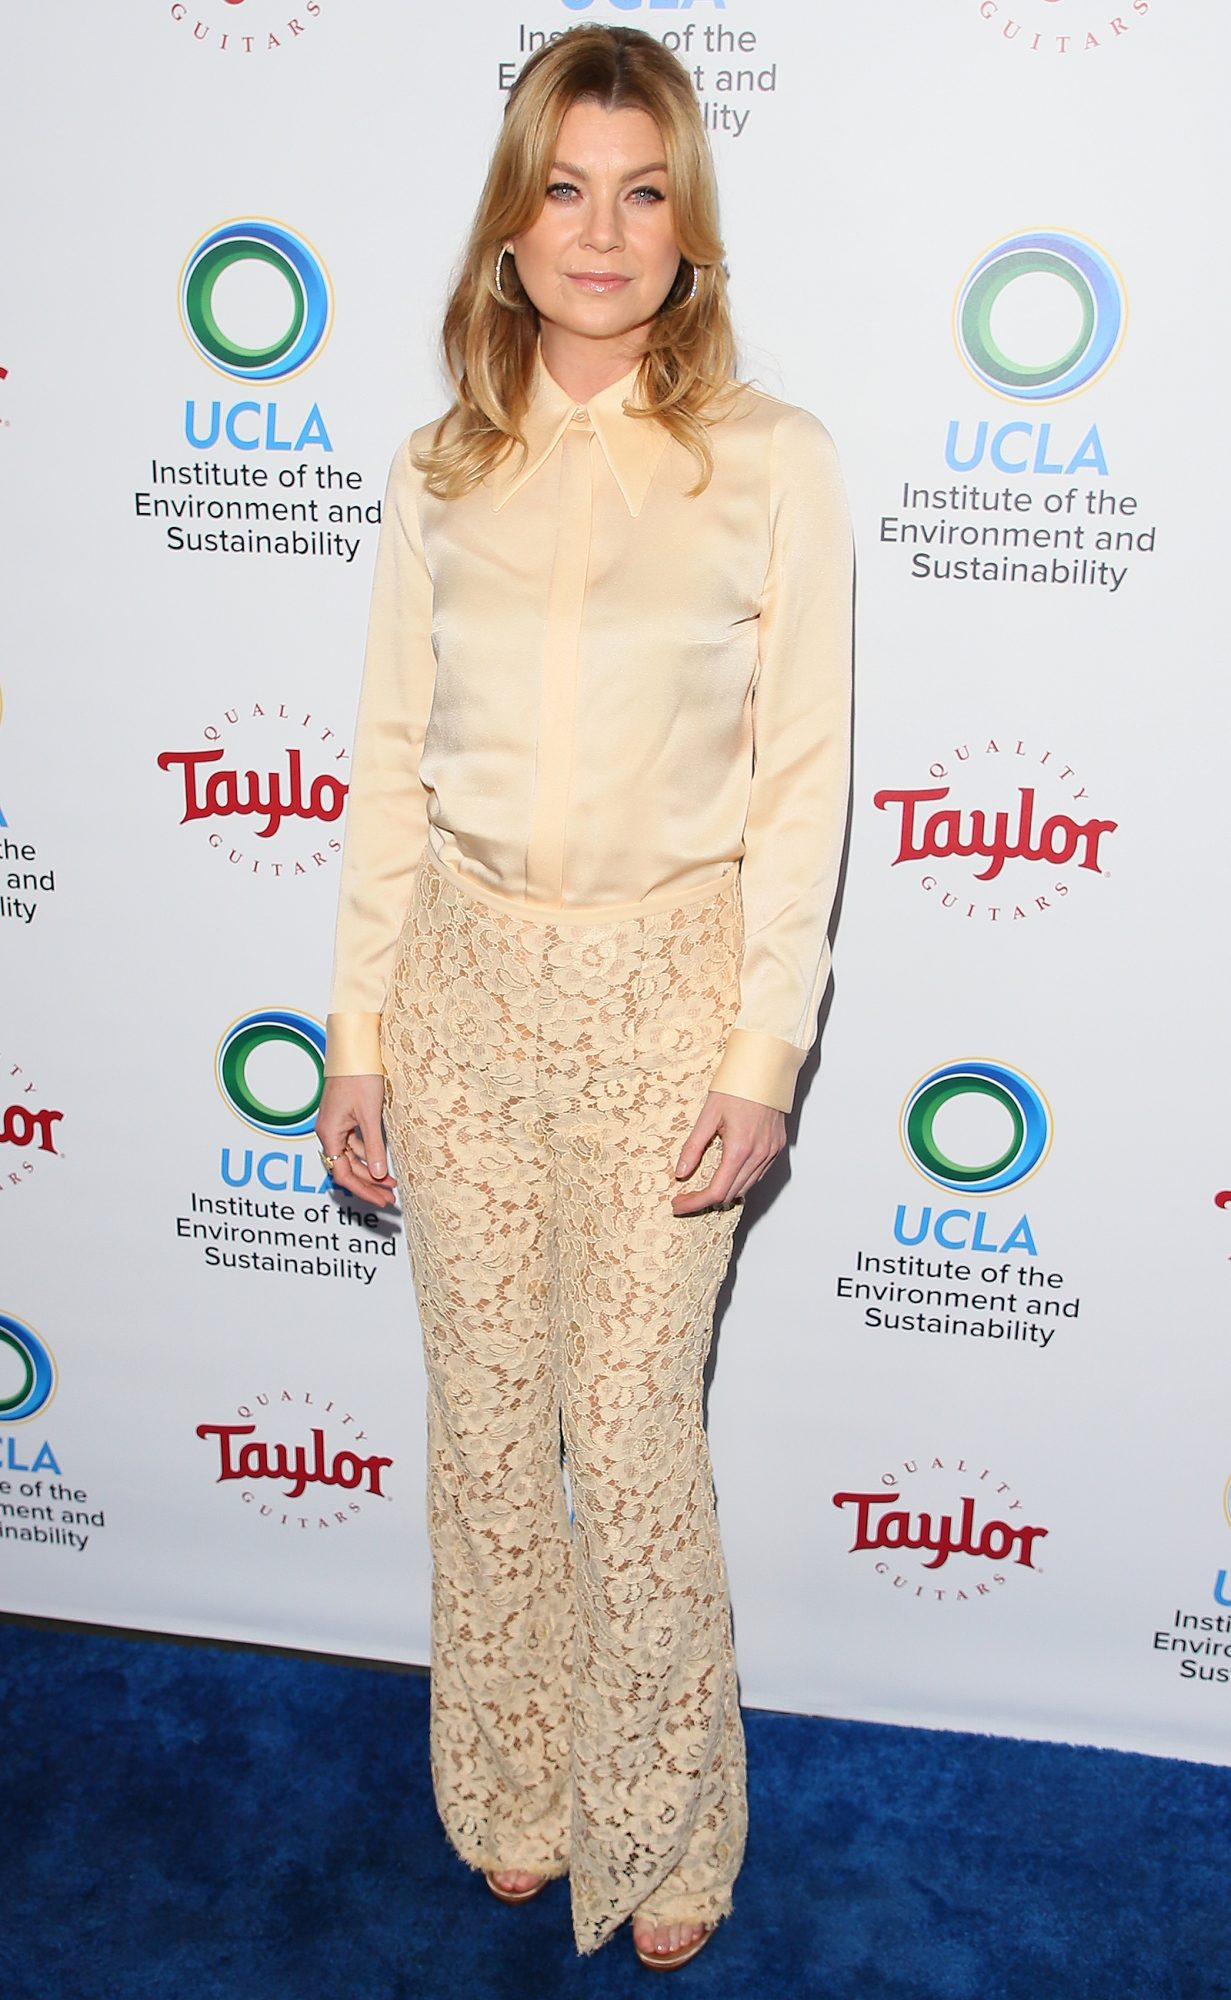 UCLA's 2018 Institute Of The Environment And Sustainability (IoES) Gala - Arrivals